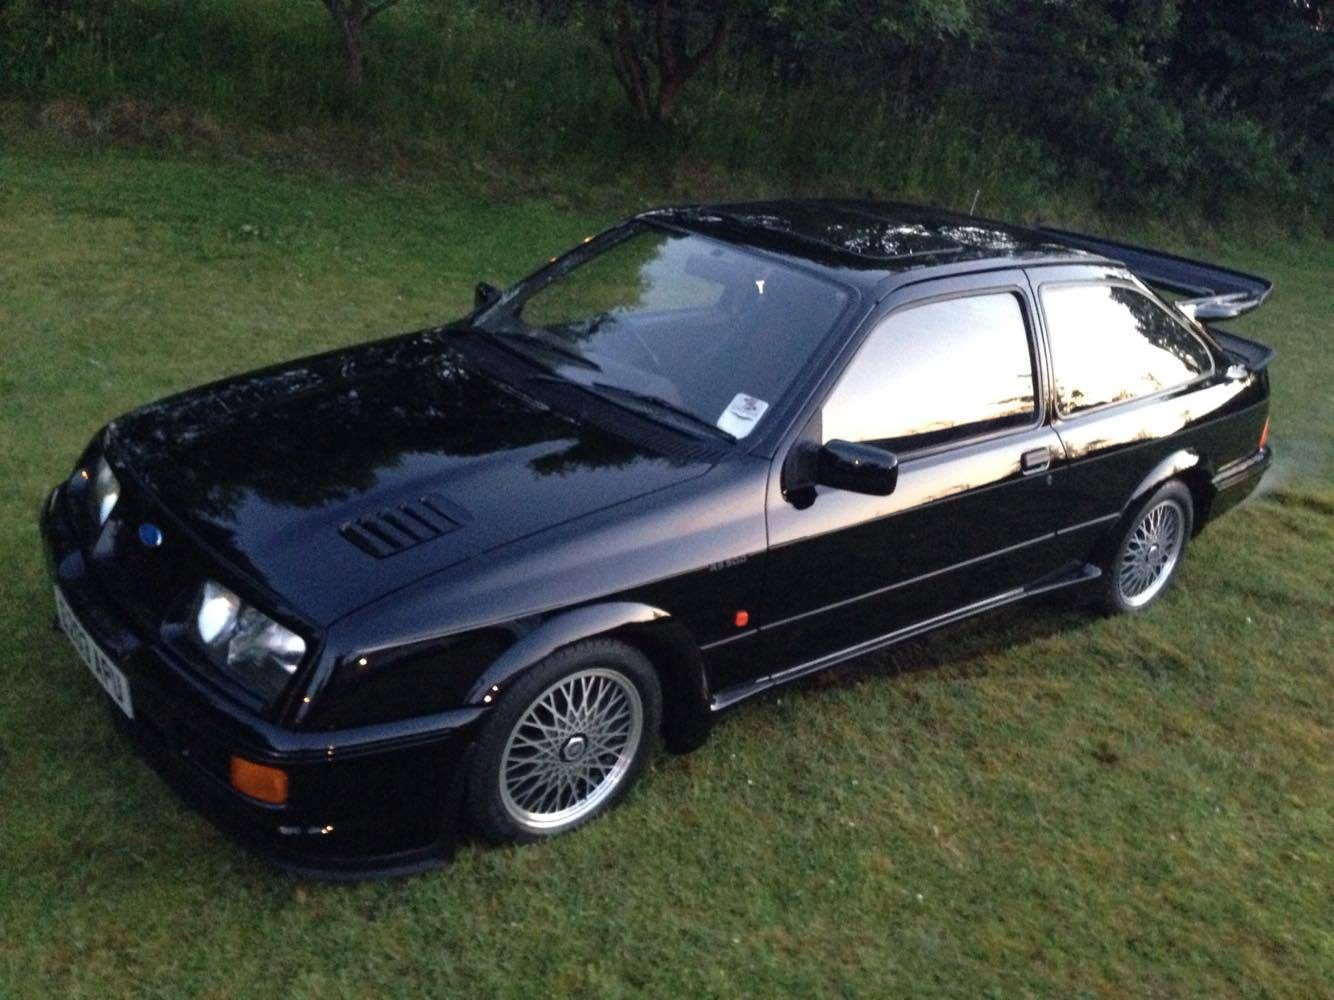 Trio of Ford Sierra RS Cosworths snatched in carefully planned raid